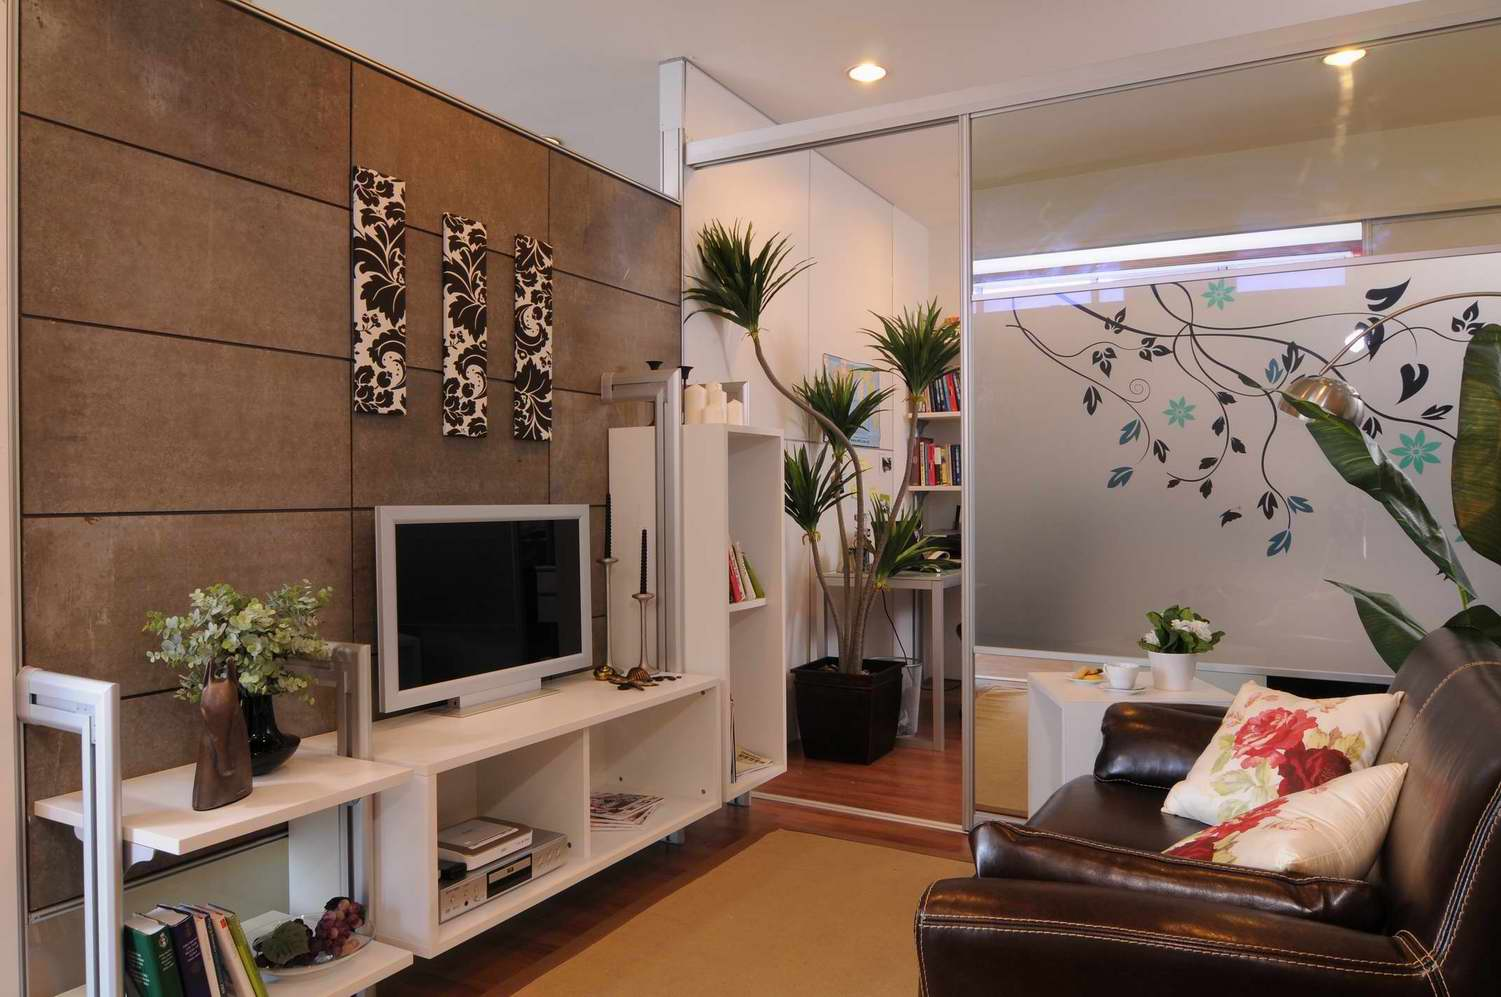 Lcd wall unit design for living room living room designs for Tv unit designs for living room